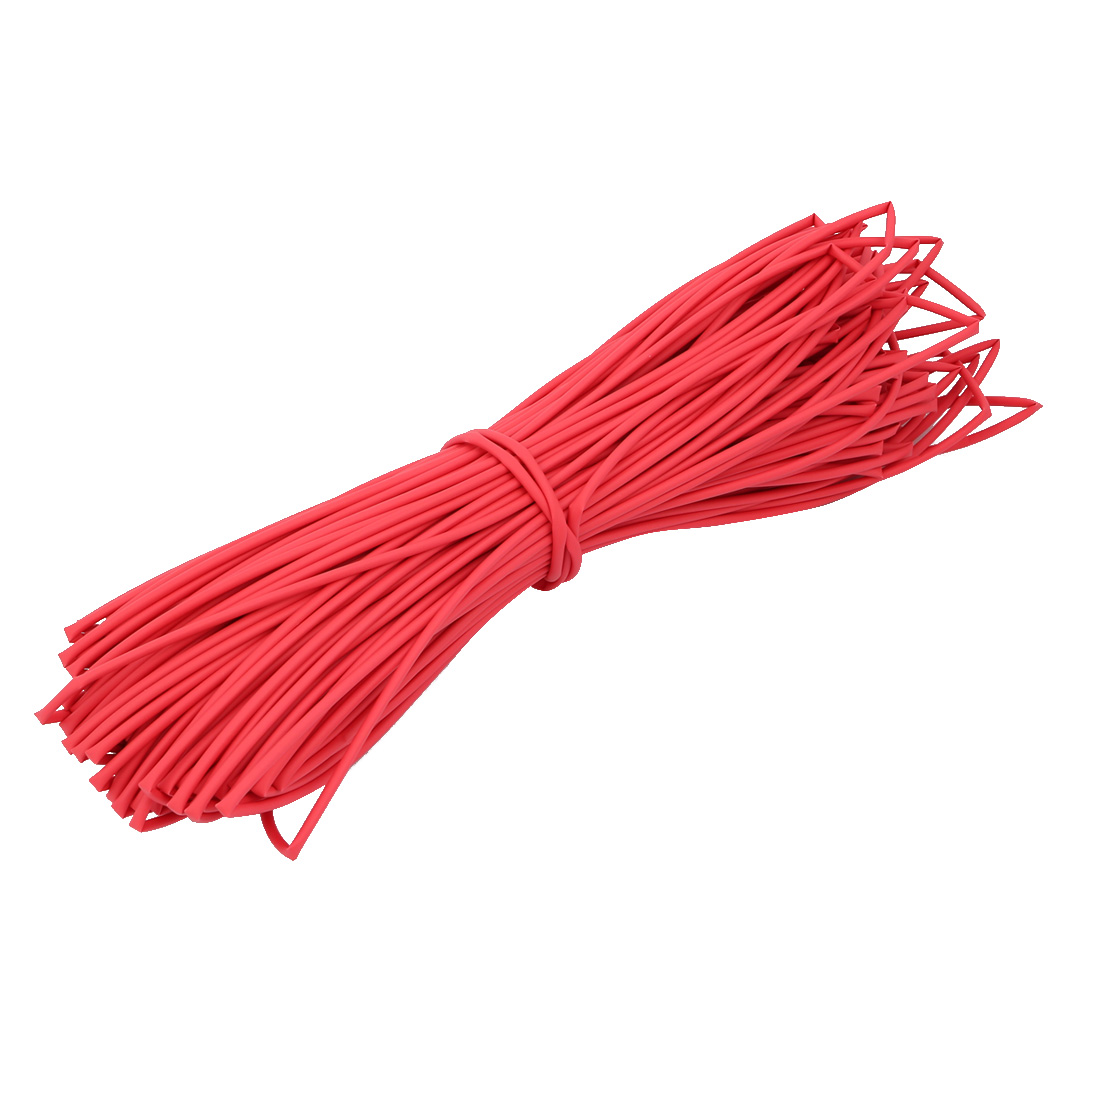 Polyolefin Heat Shrinkable Tube Wire Cable Sleeve 50 Meters Length 2mm Inner Dia Red